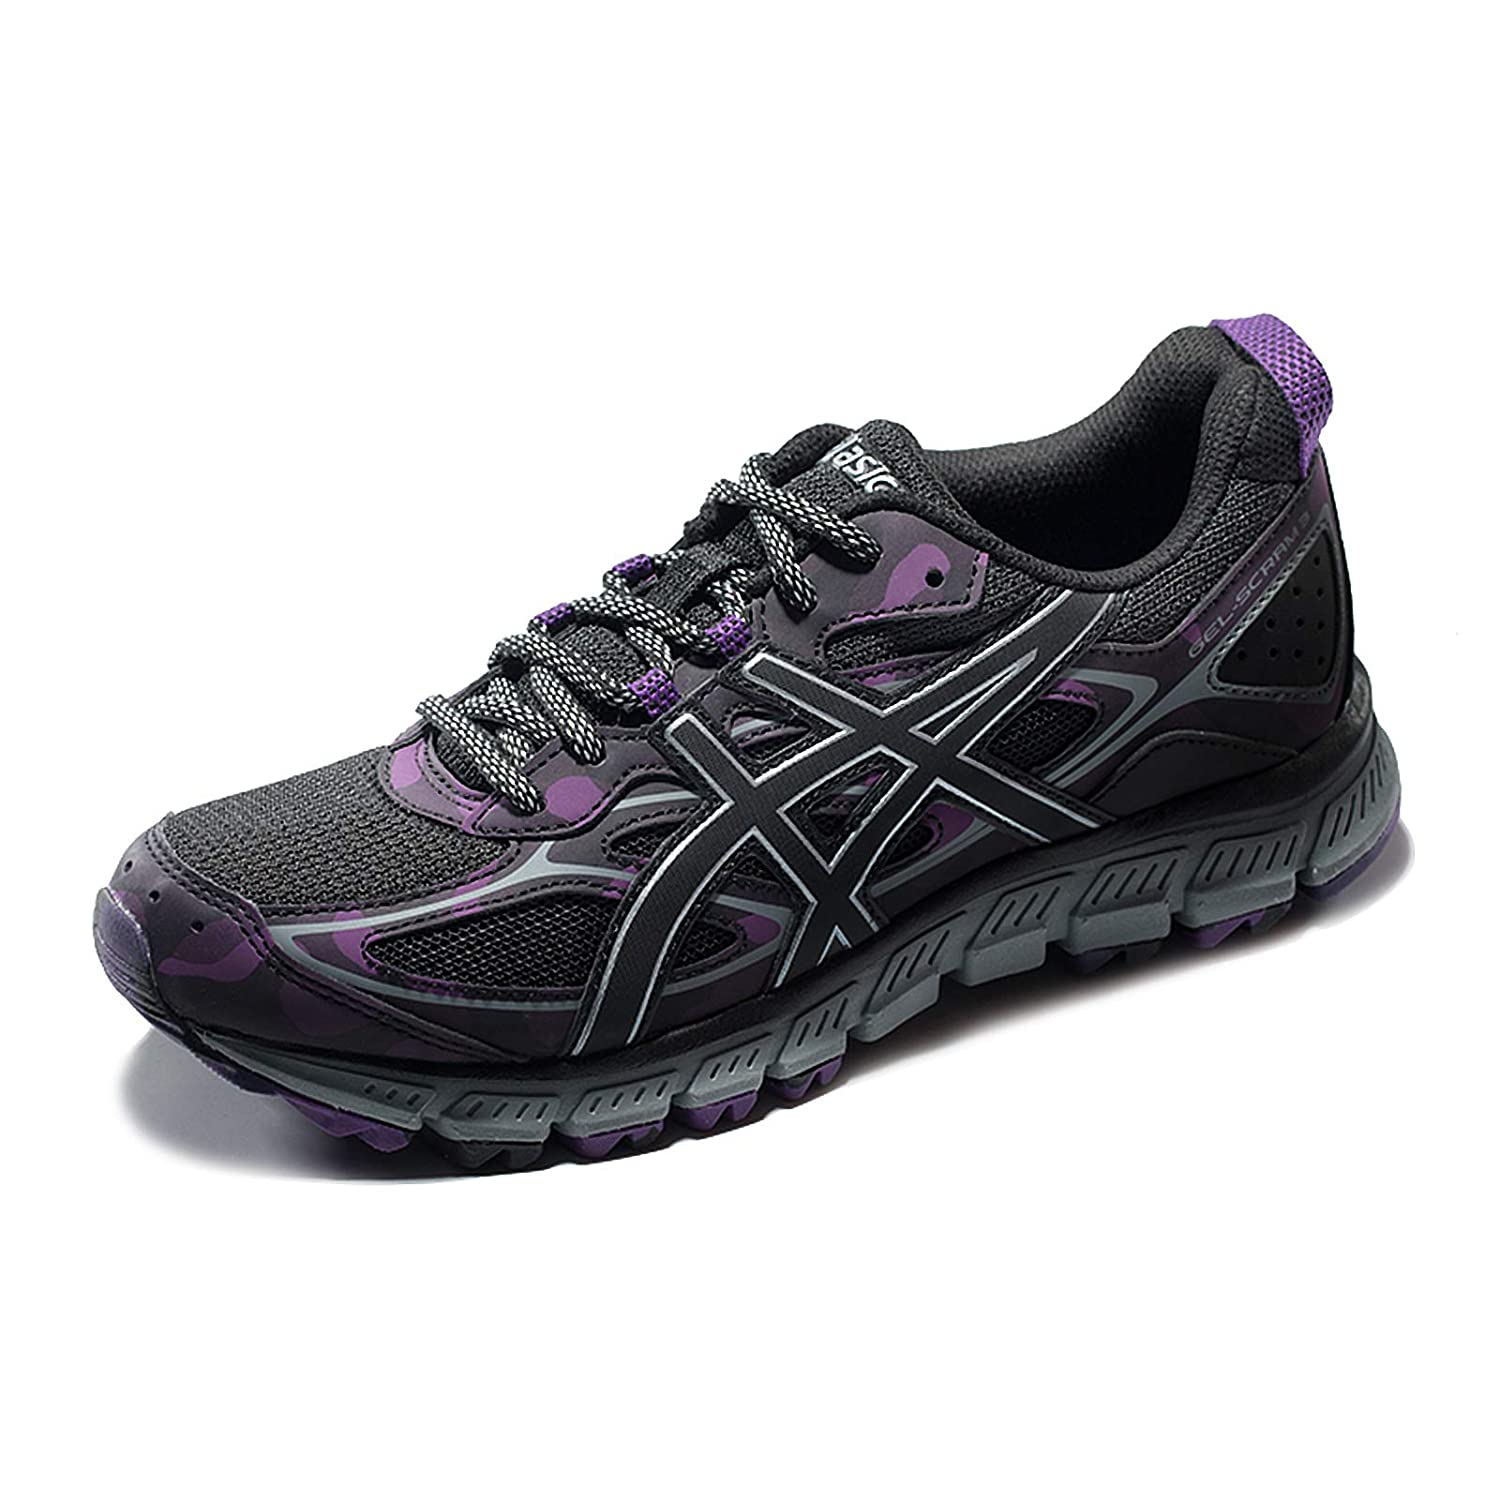 promo code 7a220 00e80 Amazon.com | ASICS Women's Gel-Scram 3 Trail Runner (7 M US ...